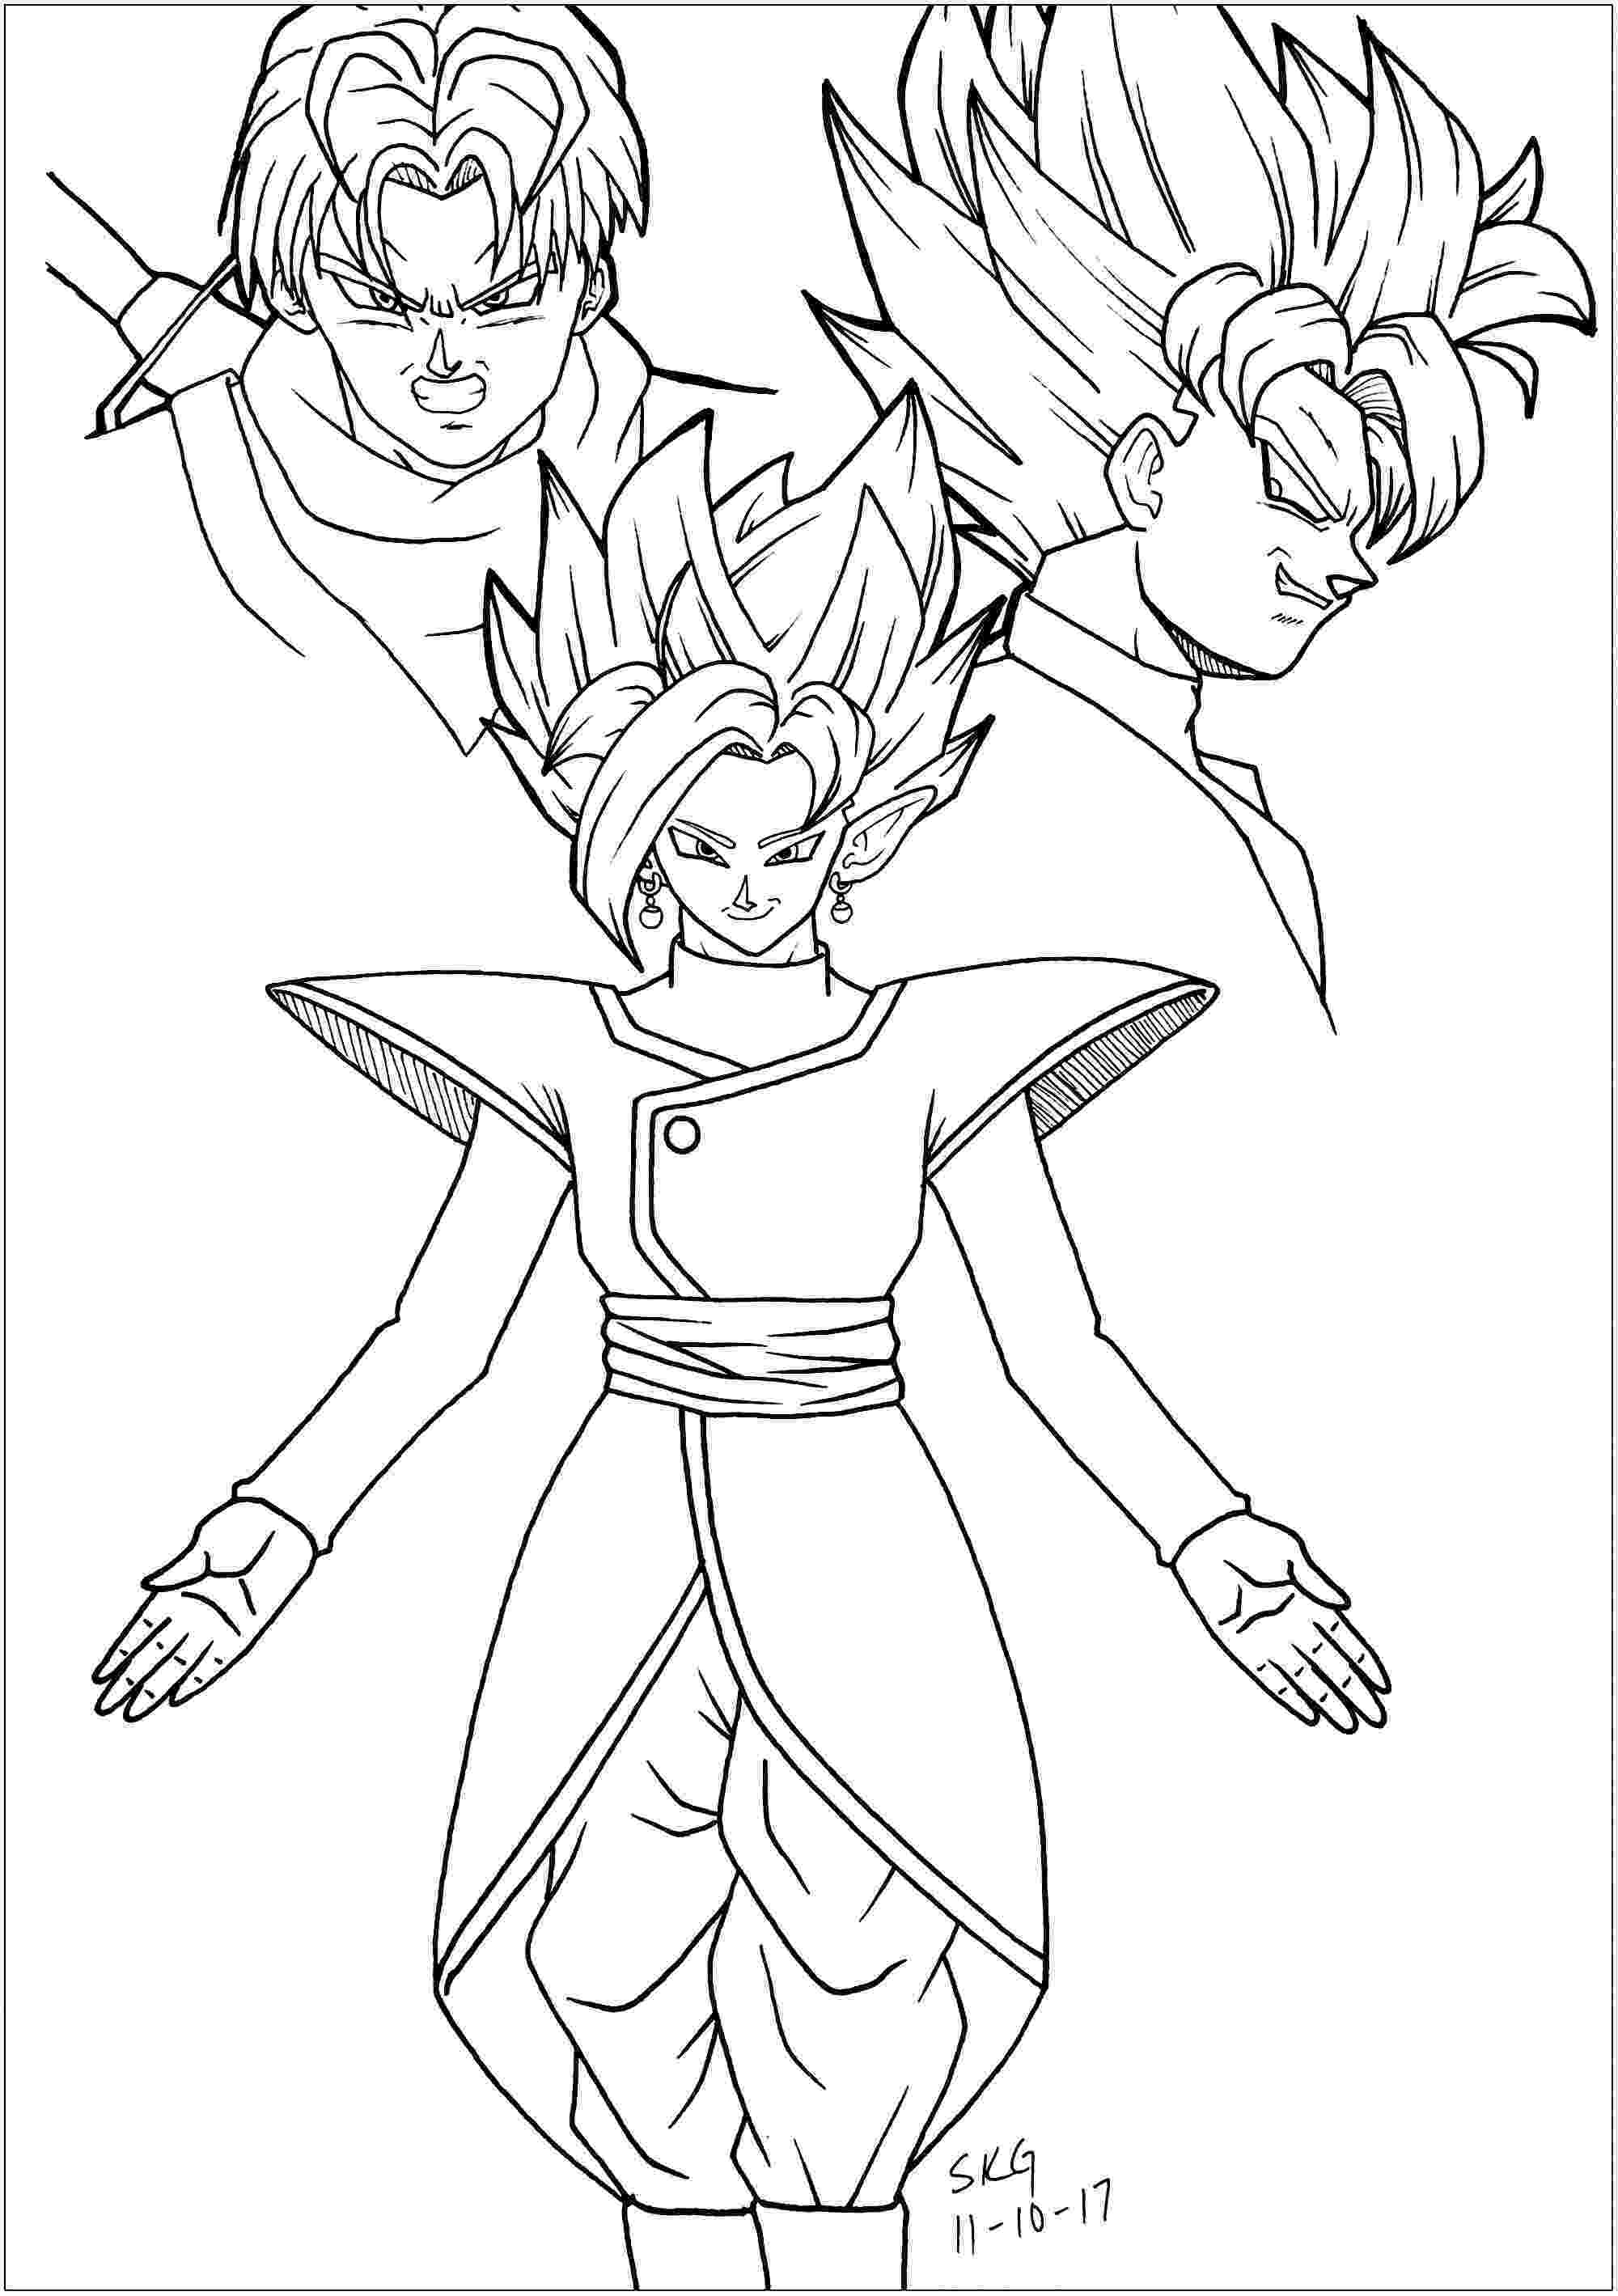 printable dragon ball z coloring pages dragon ball z coloring pages kidsuki printable dragon coloring ball z pages